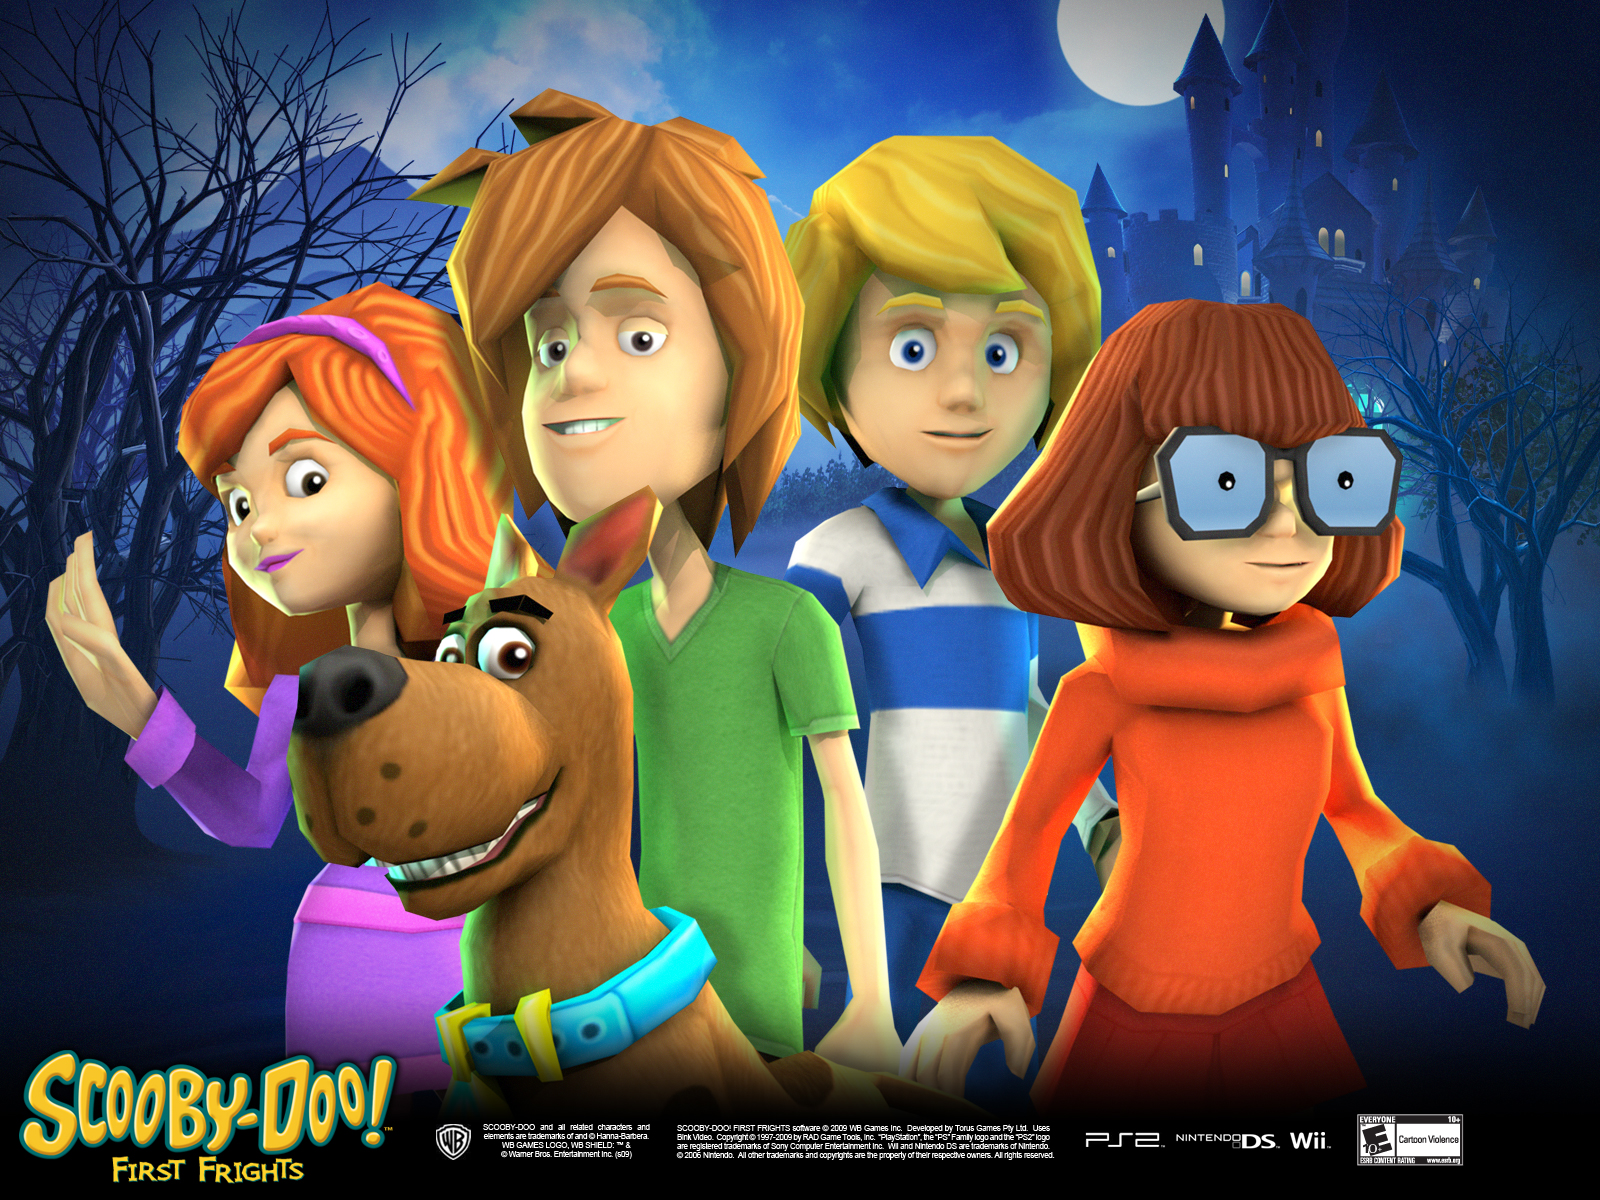 Scooby Doo First Frights